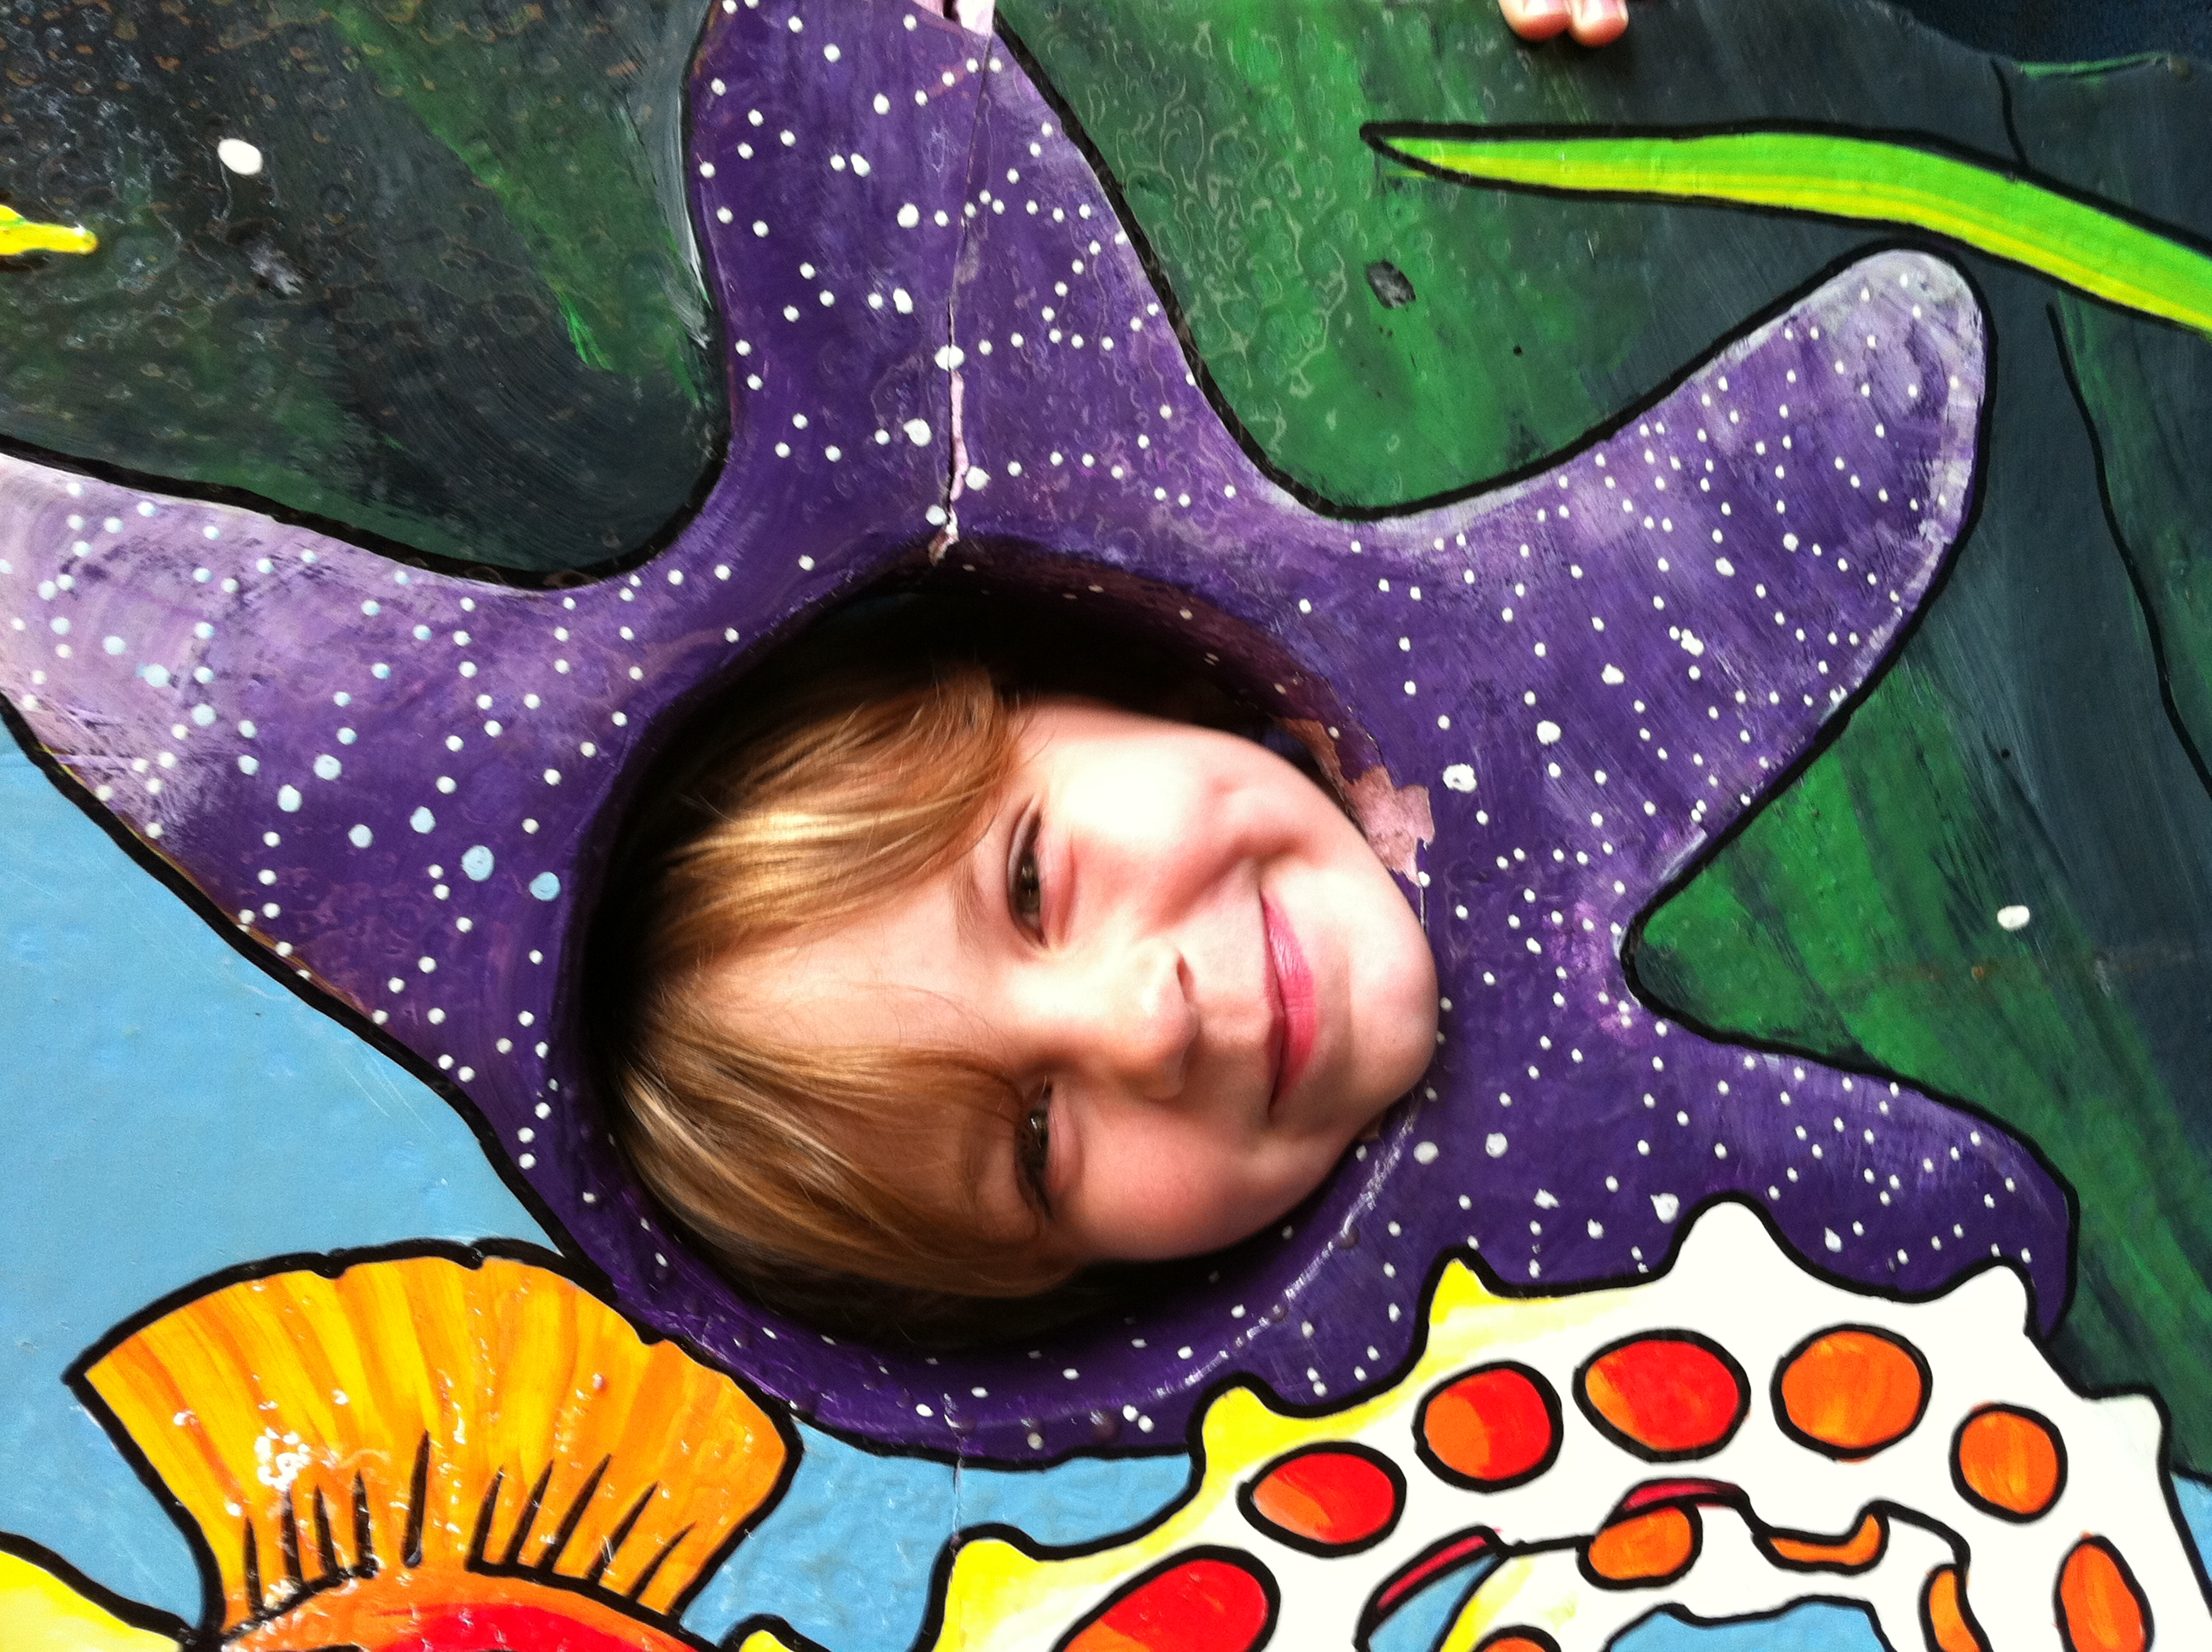 Evelyn has become a very happy purple starfish!